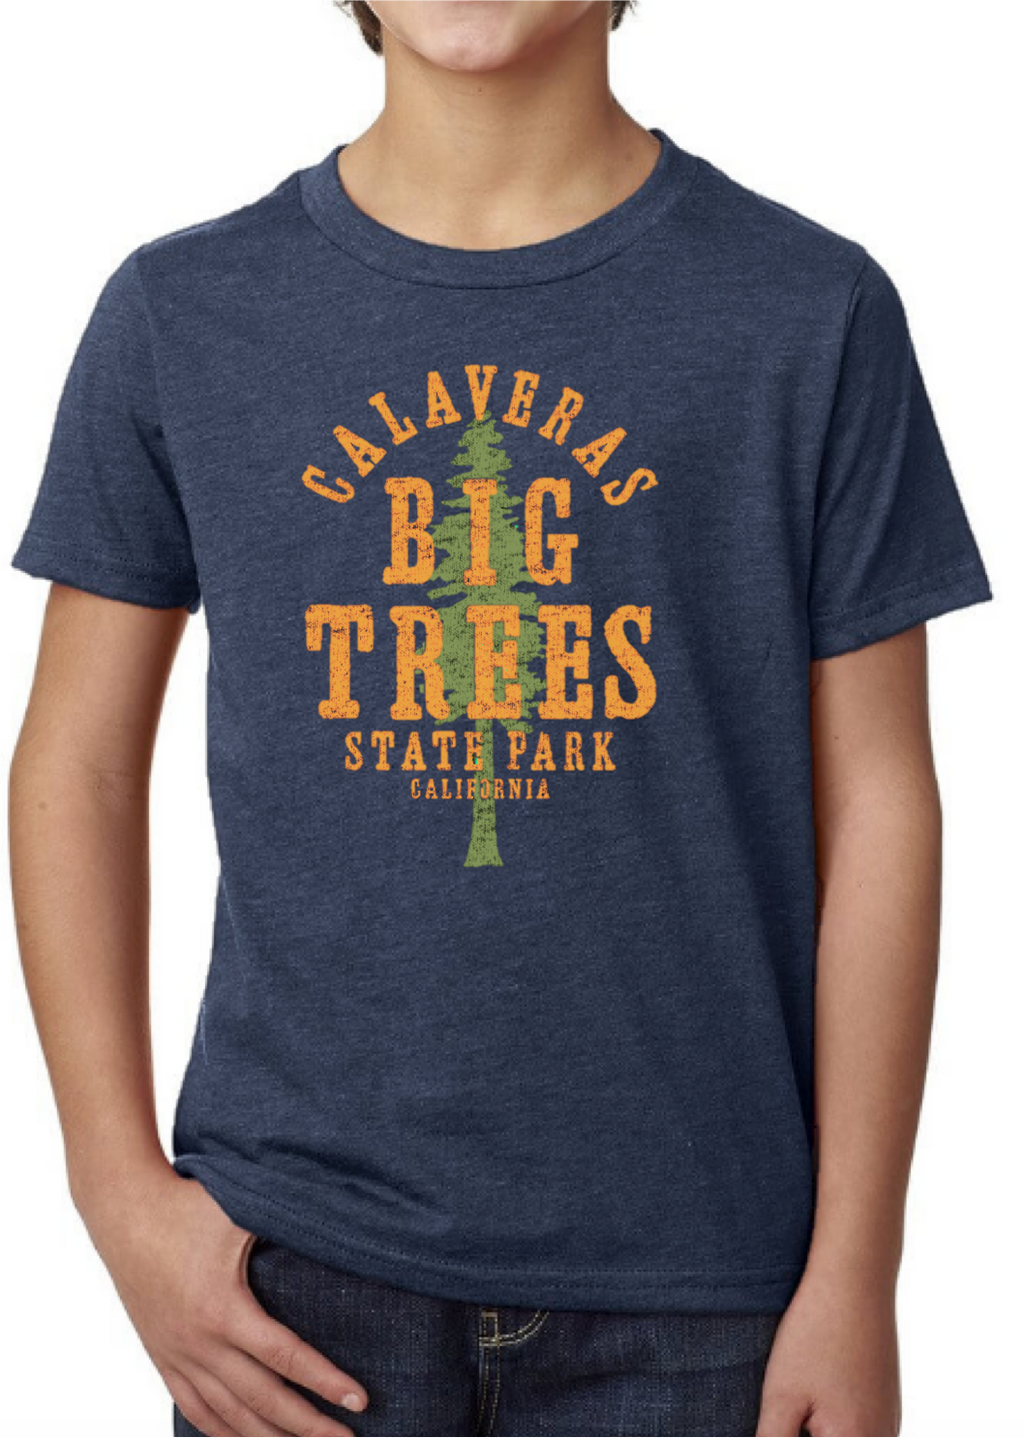 Kids Calaveras Big Trees State Park Tee